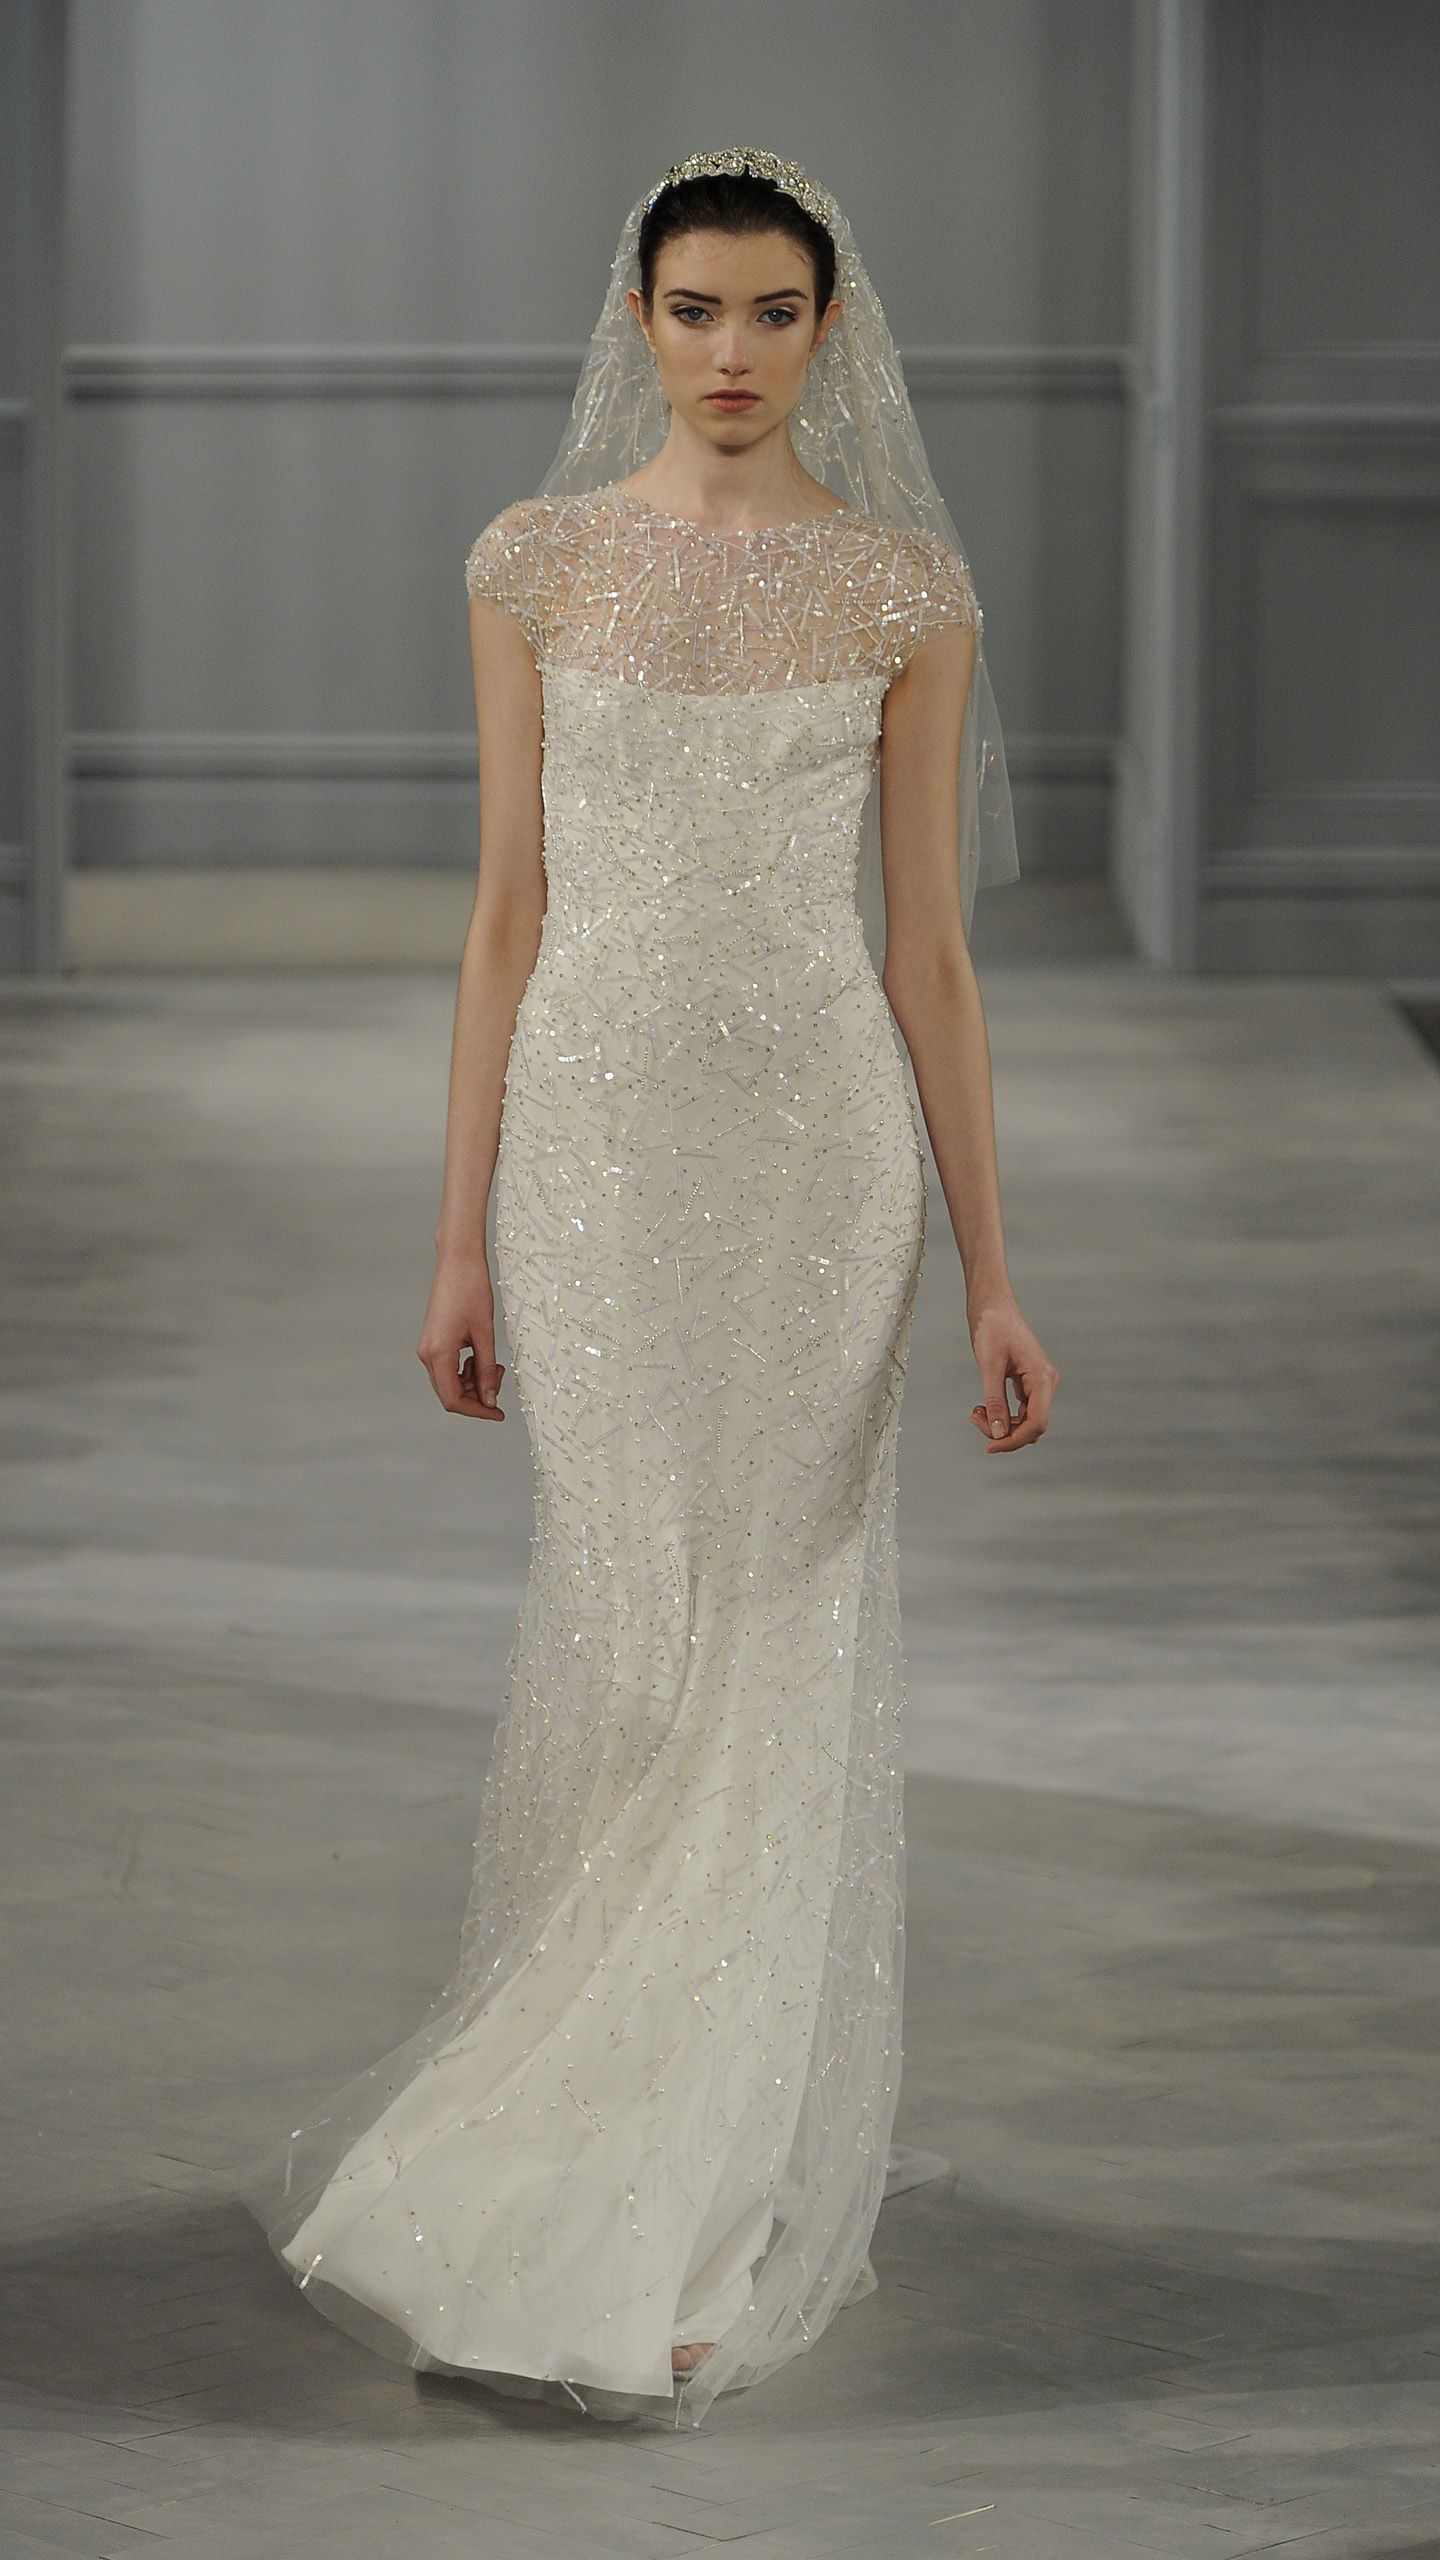 Hot new wedding dress trends from this day forward pinterest